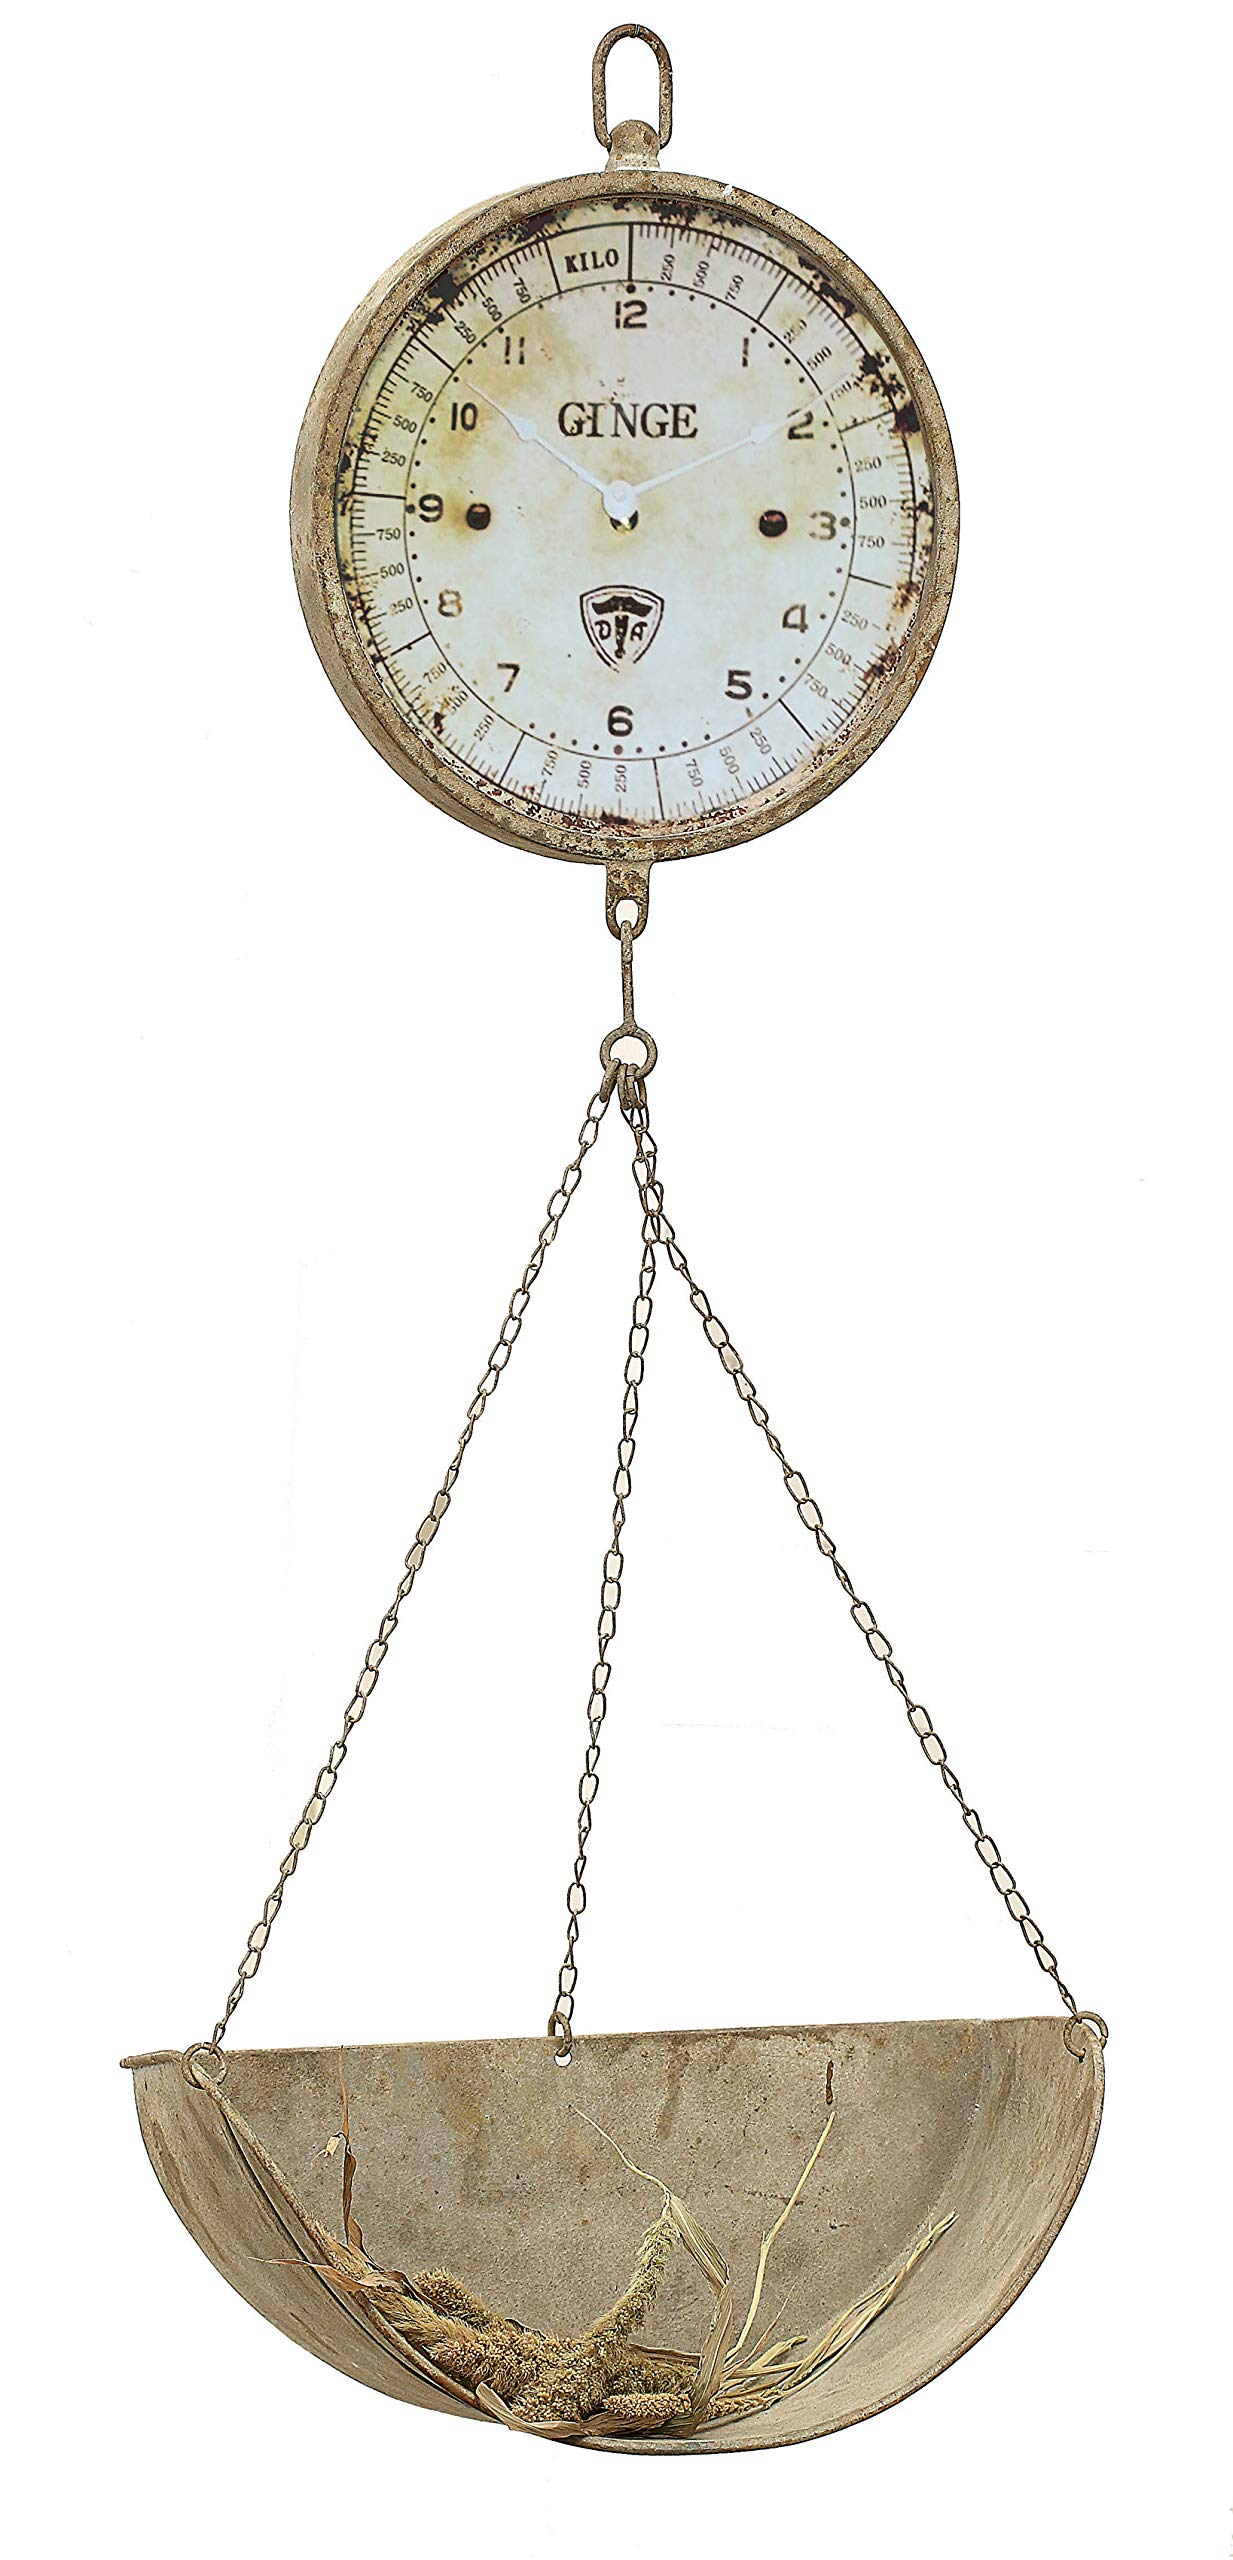 Creative Co-op Metal Reproduction of Hanging Produce Scale Clock by Creative Co-op